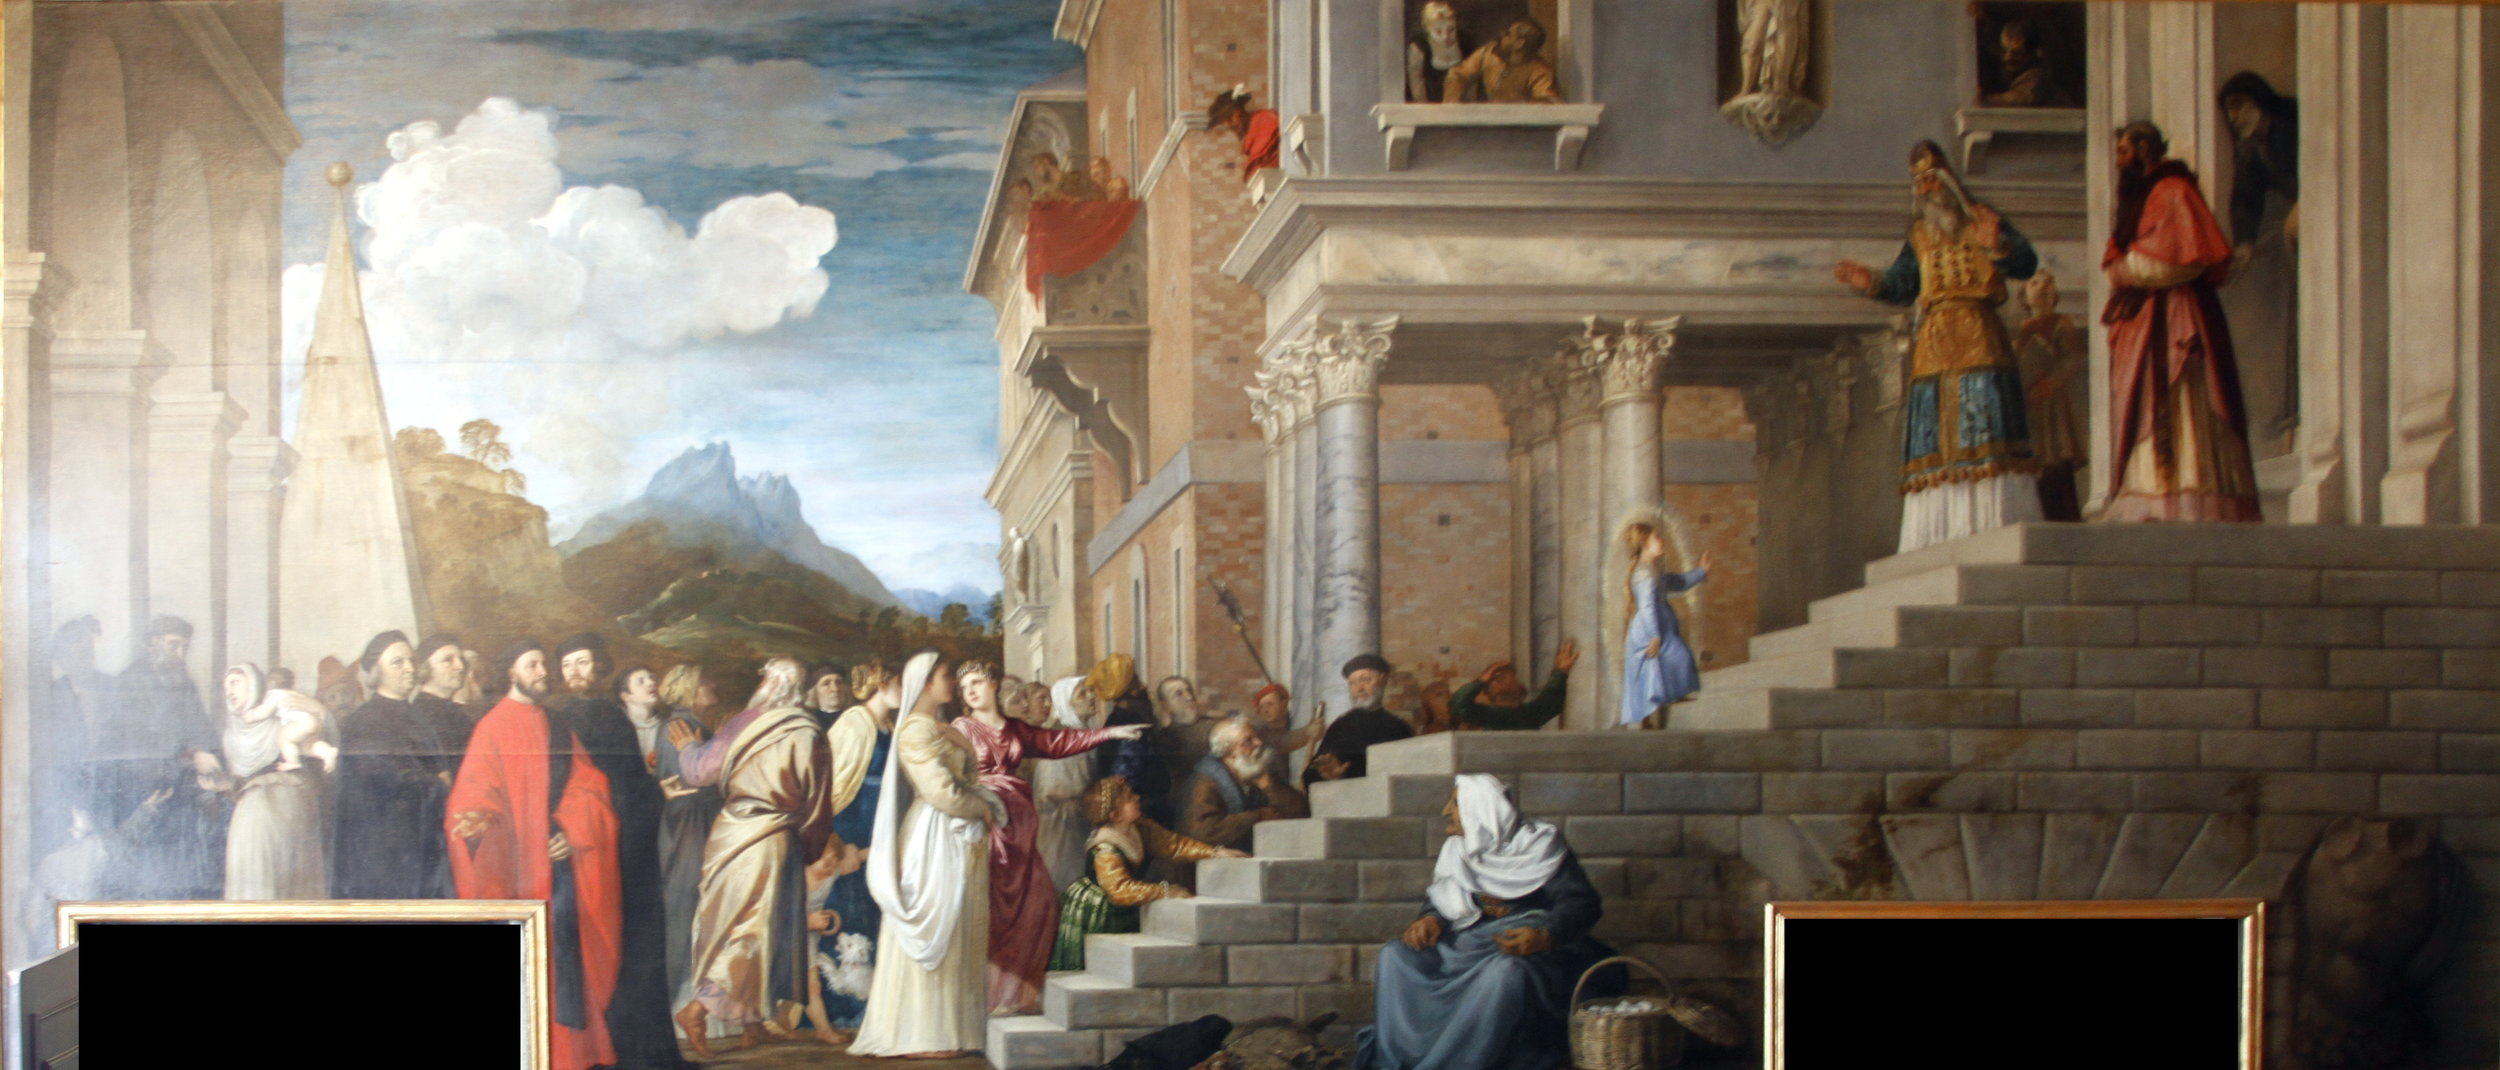 The Presentation of the Virgin at the Temple by  TITIAN    circa 1534–1538. The painting depicts the three year-old Virgin Mary entering the Temple of Jerusalem.   Gallerie dell'Accademia  Collection